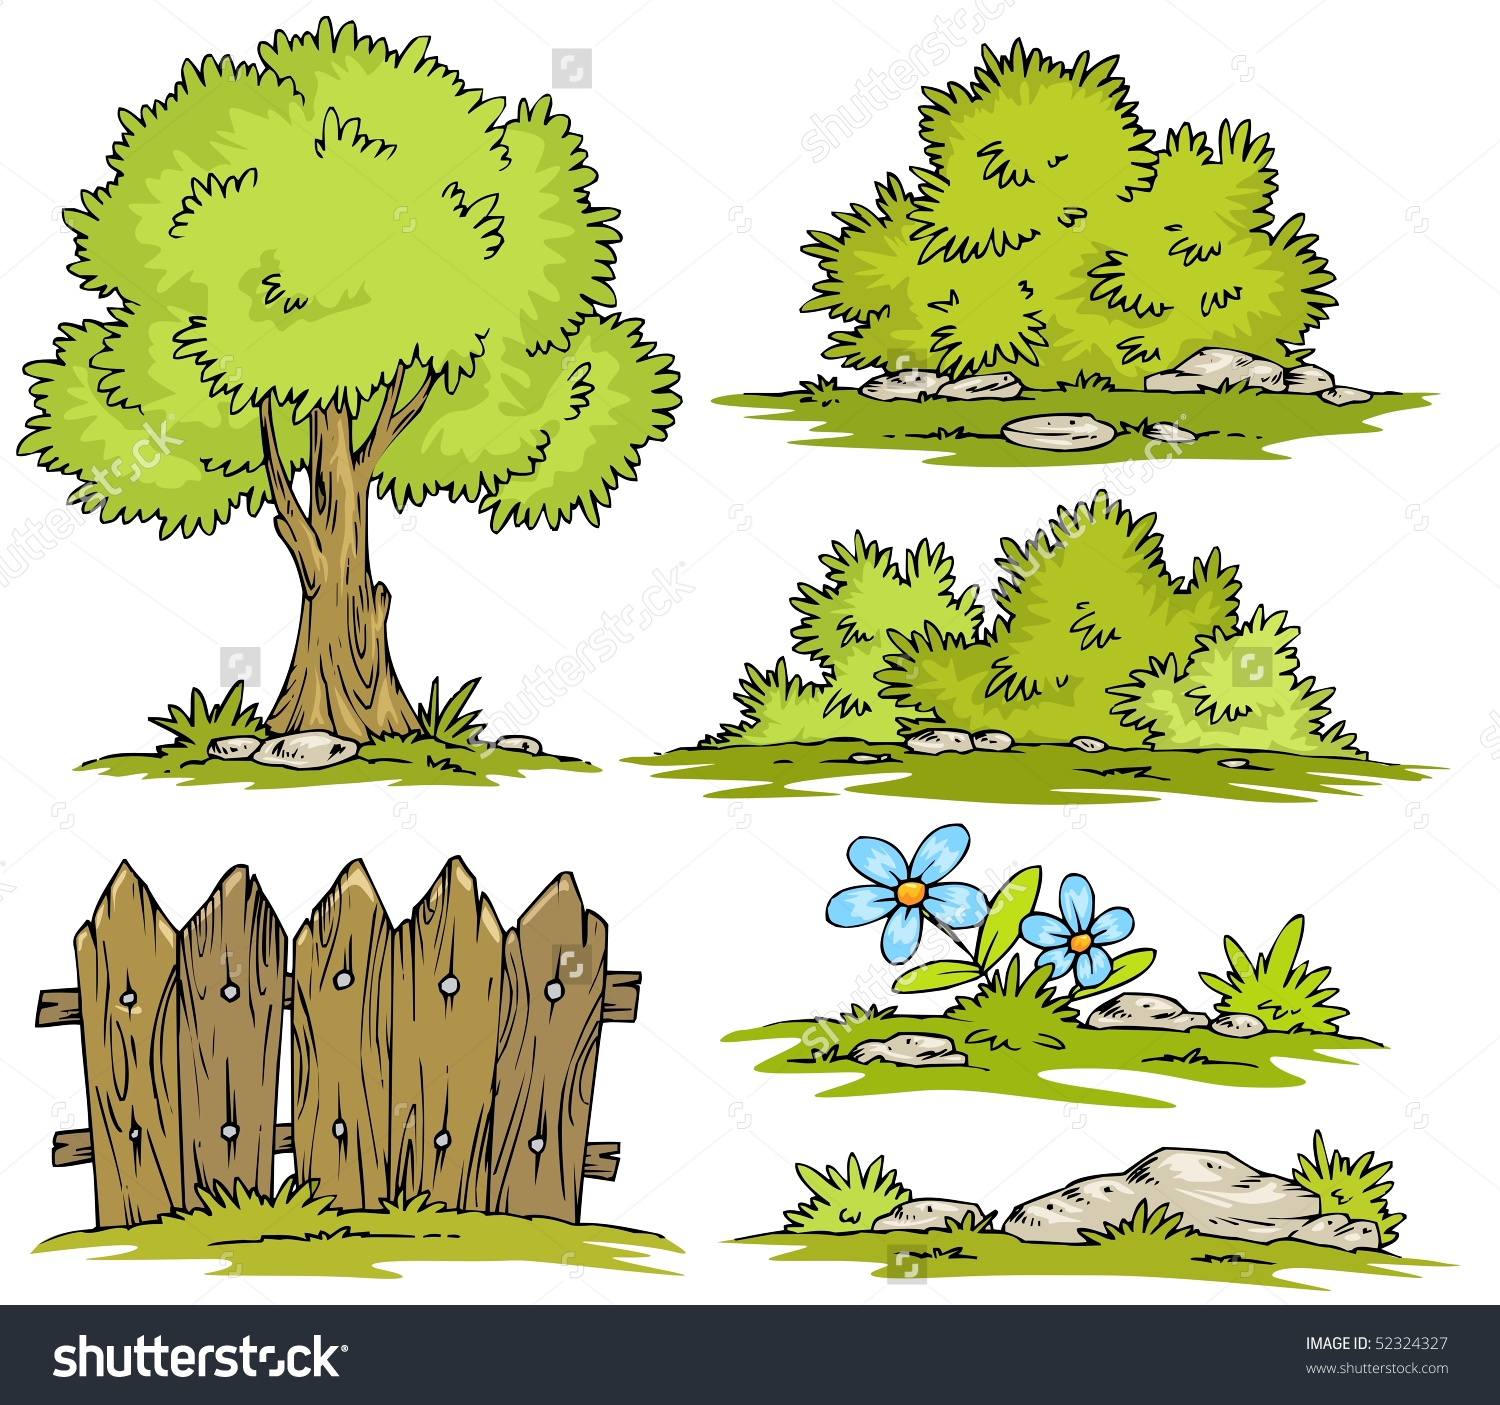 Landscape clipart #3, Download drawings